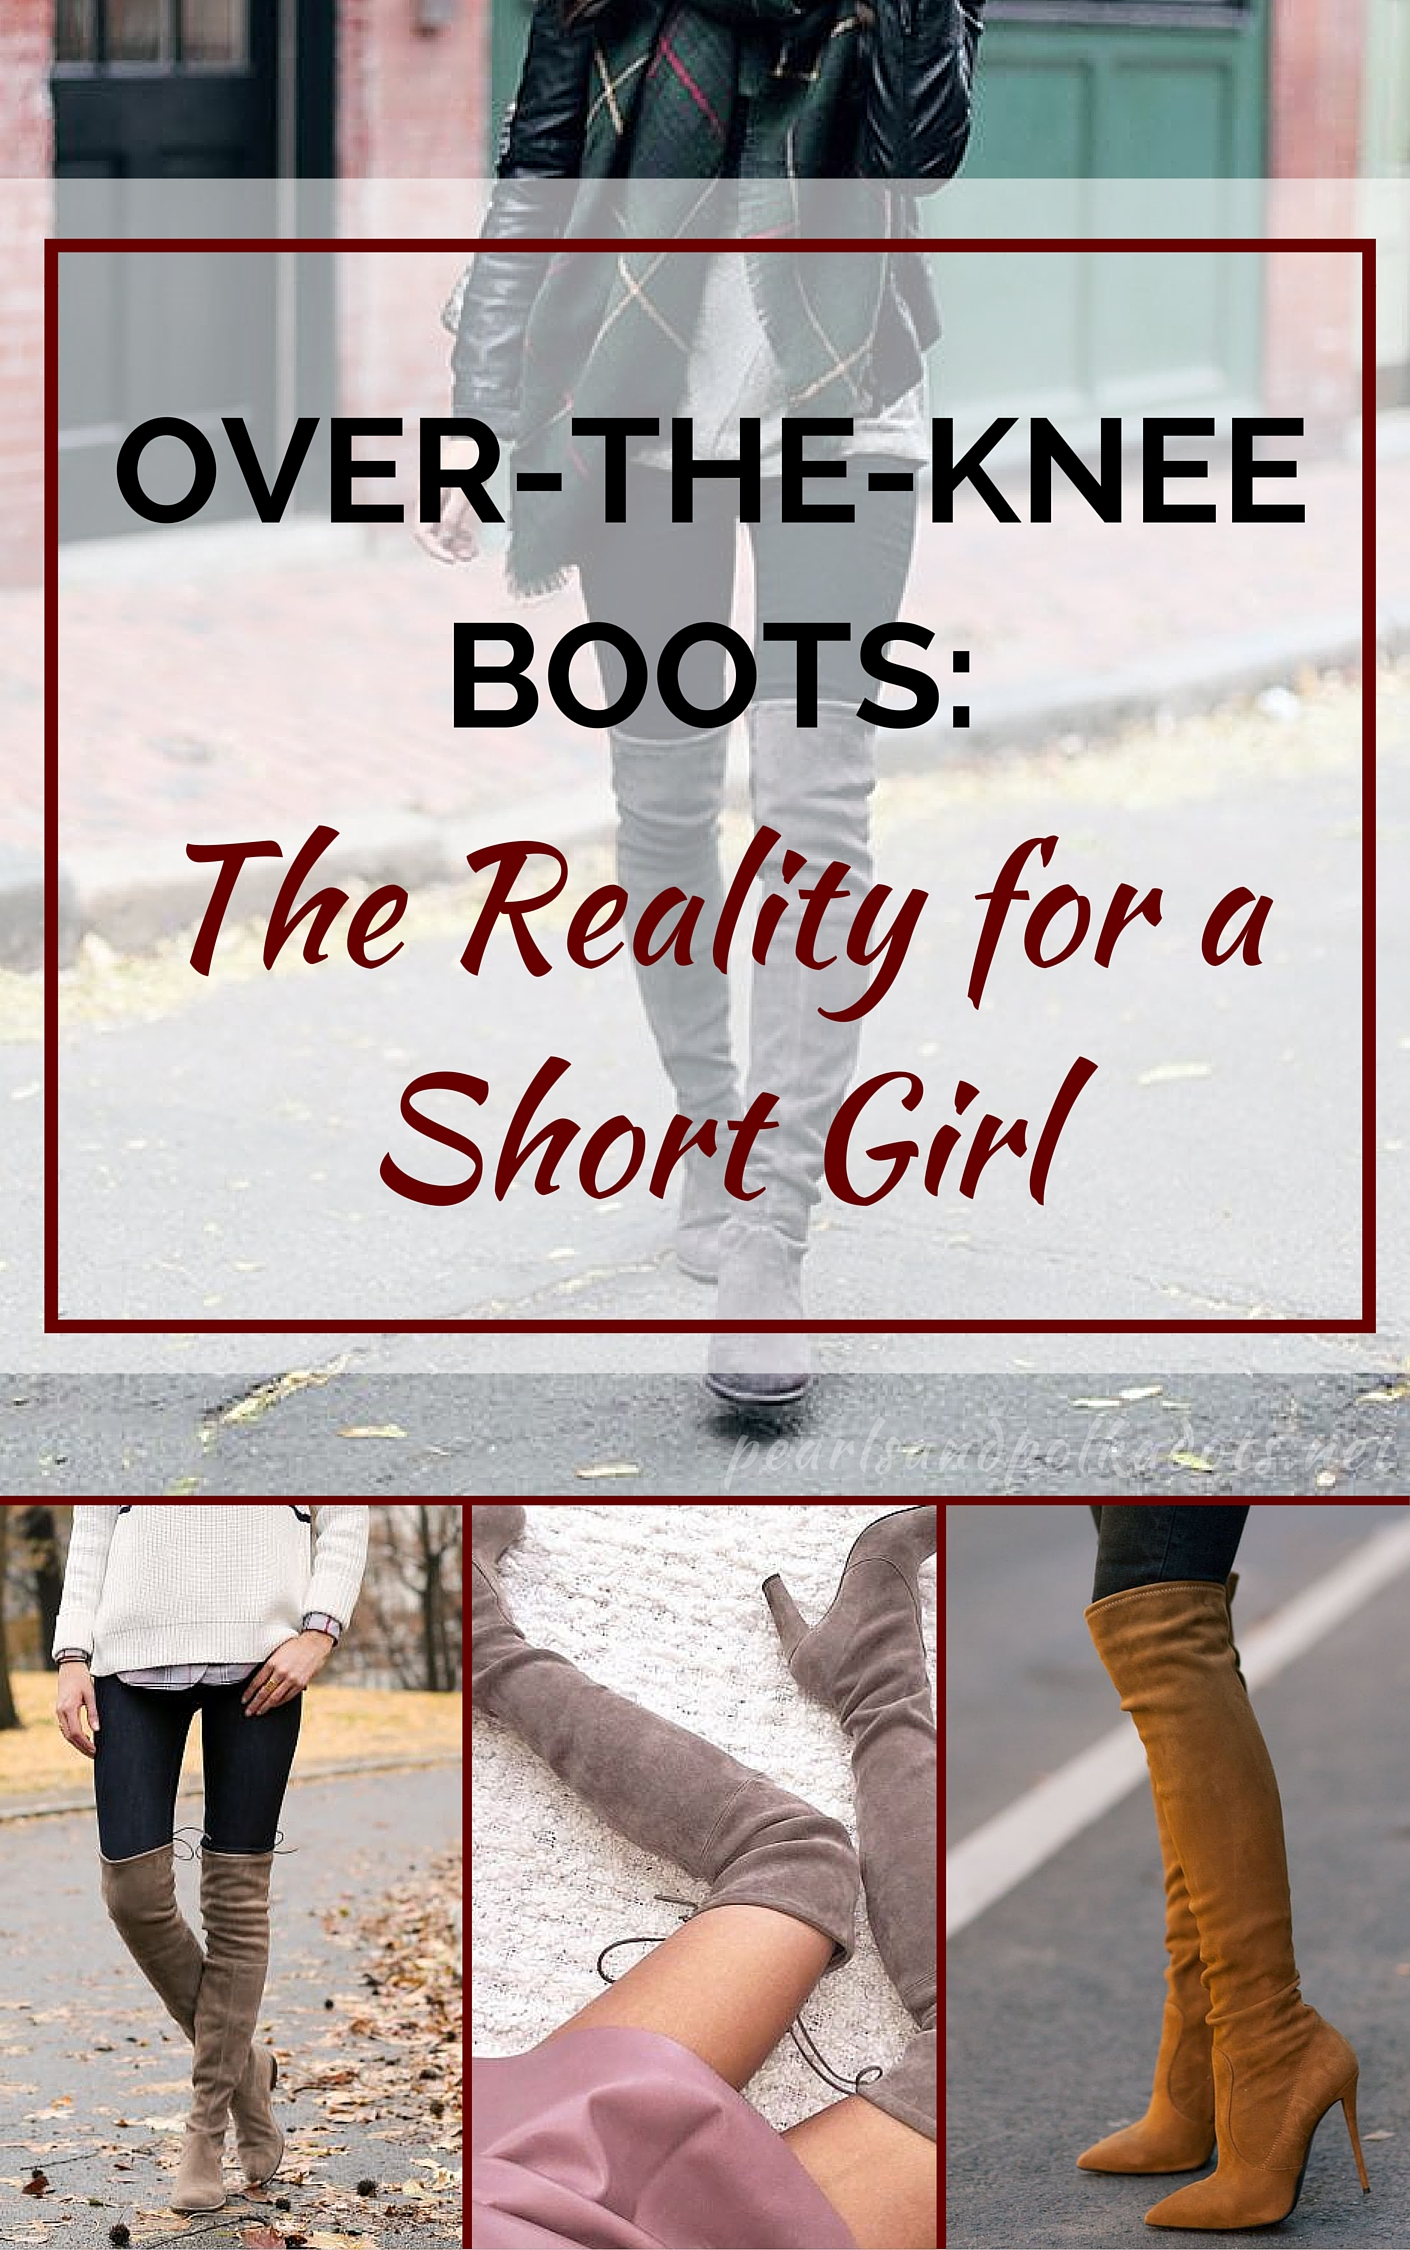 Over-the-Knee Boots: the Reality for a Short Girl